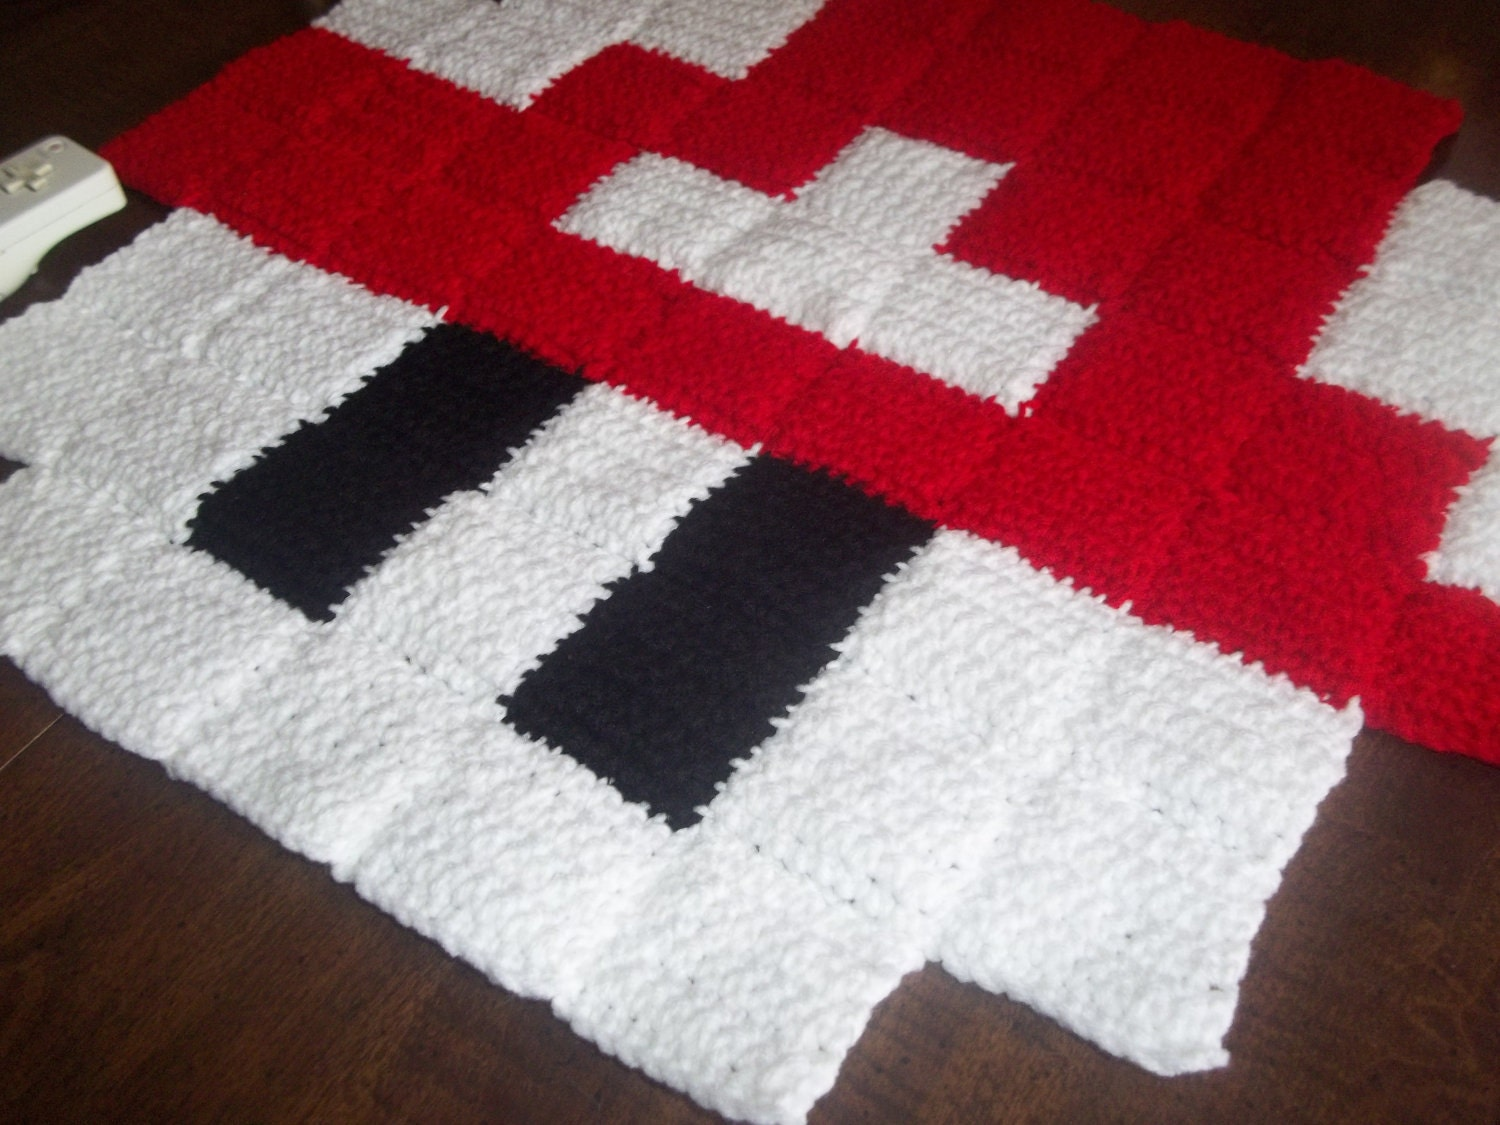 Crochet mario mushroom mini rug no shipping sale by harmonden Controller rug